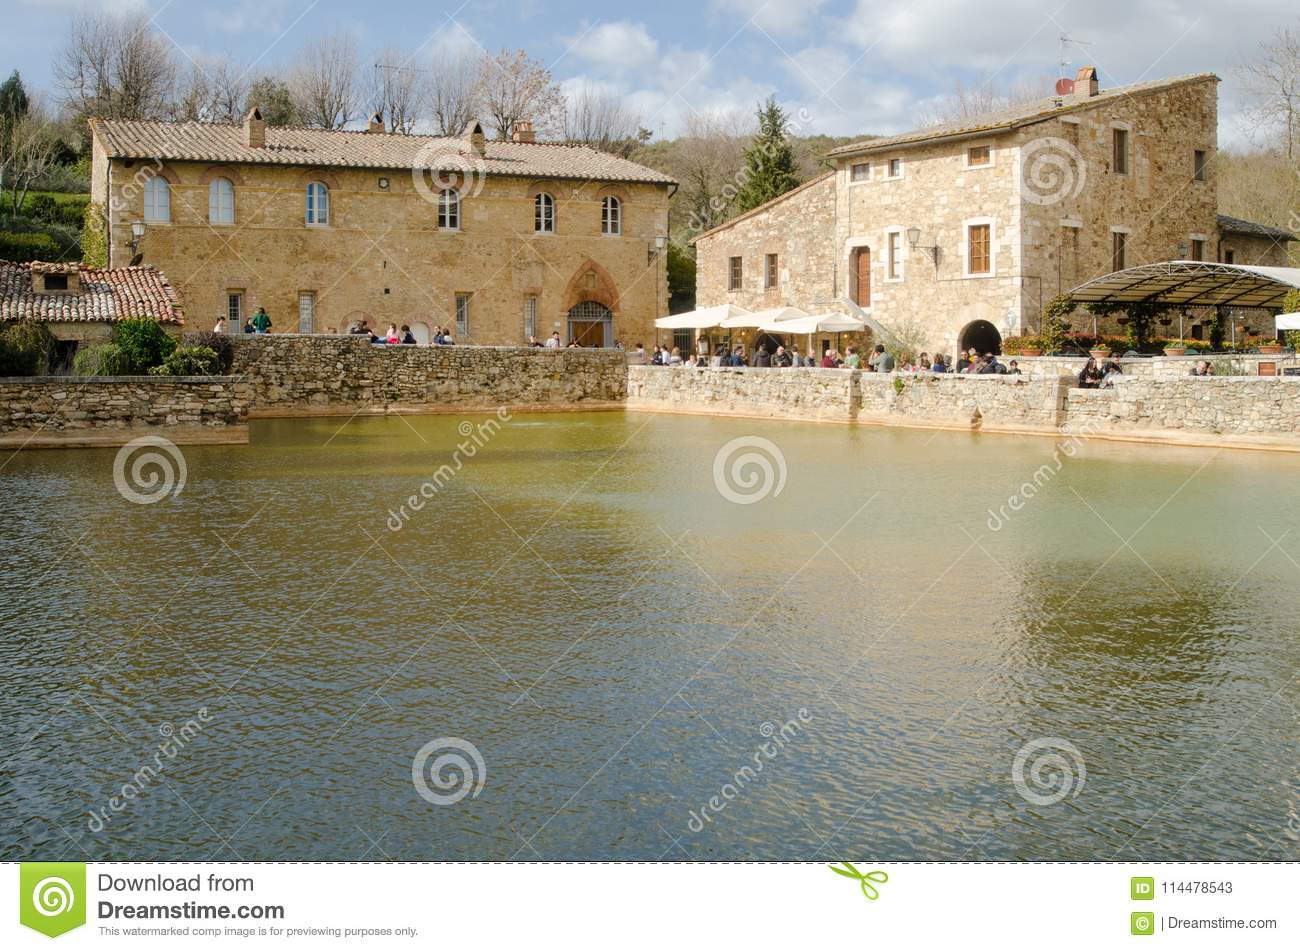 Bagno Vignoni Free Thermal Baths Ancient Baths Of Bagno Vignoni Editorial Stock Photo Image Of